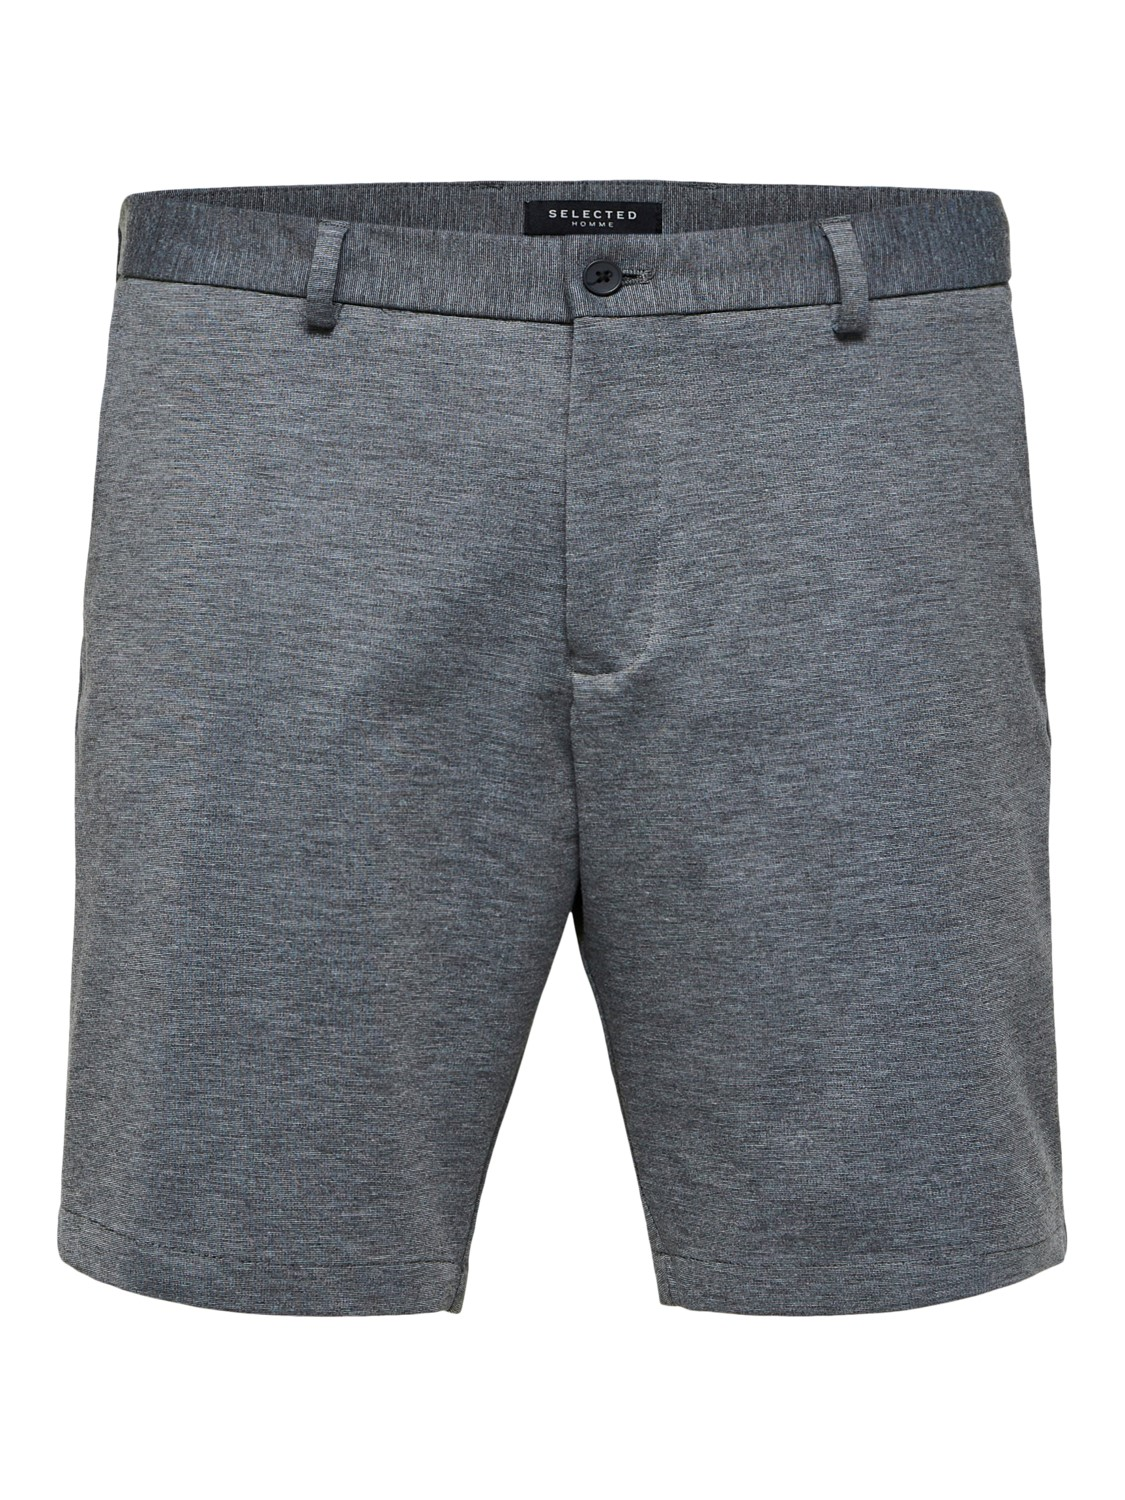 Selected - slhaiden Shorts Grey | Gate36 Hobro